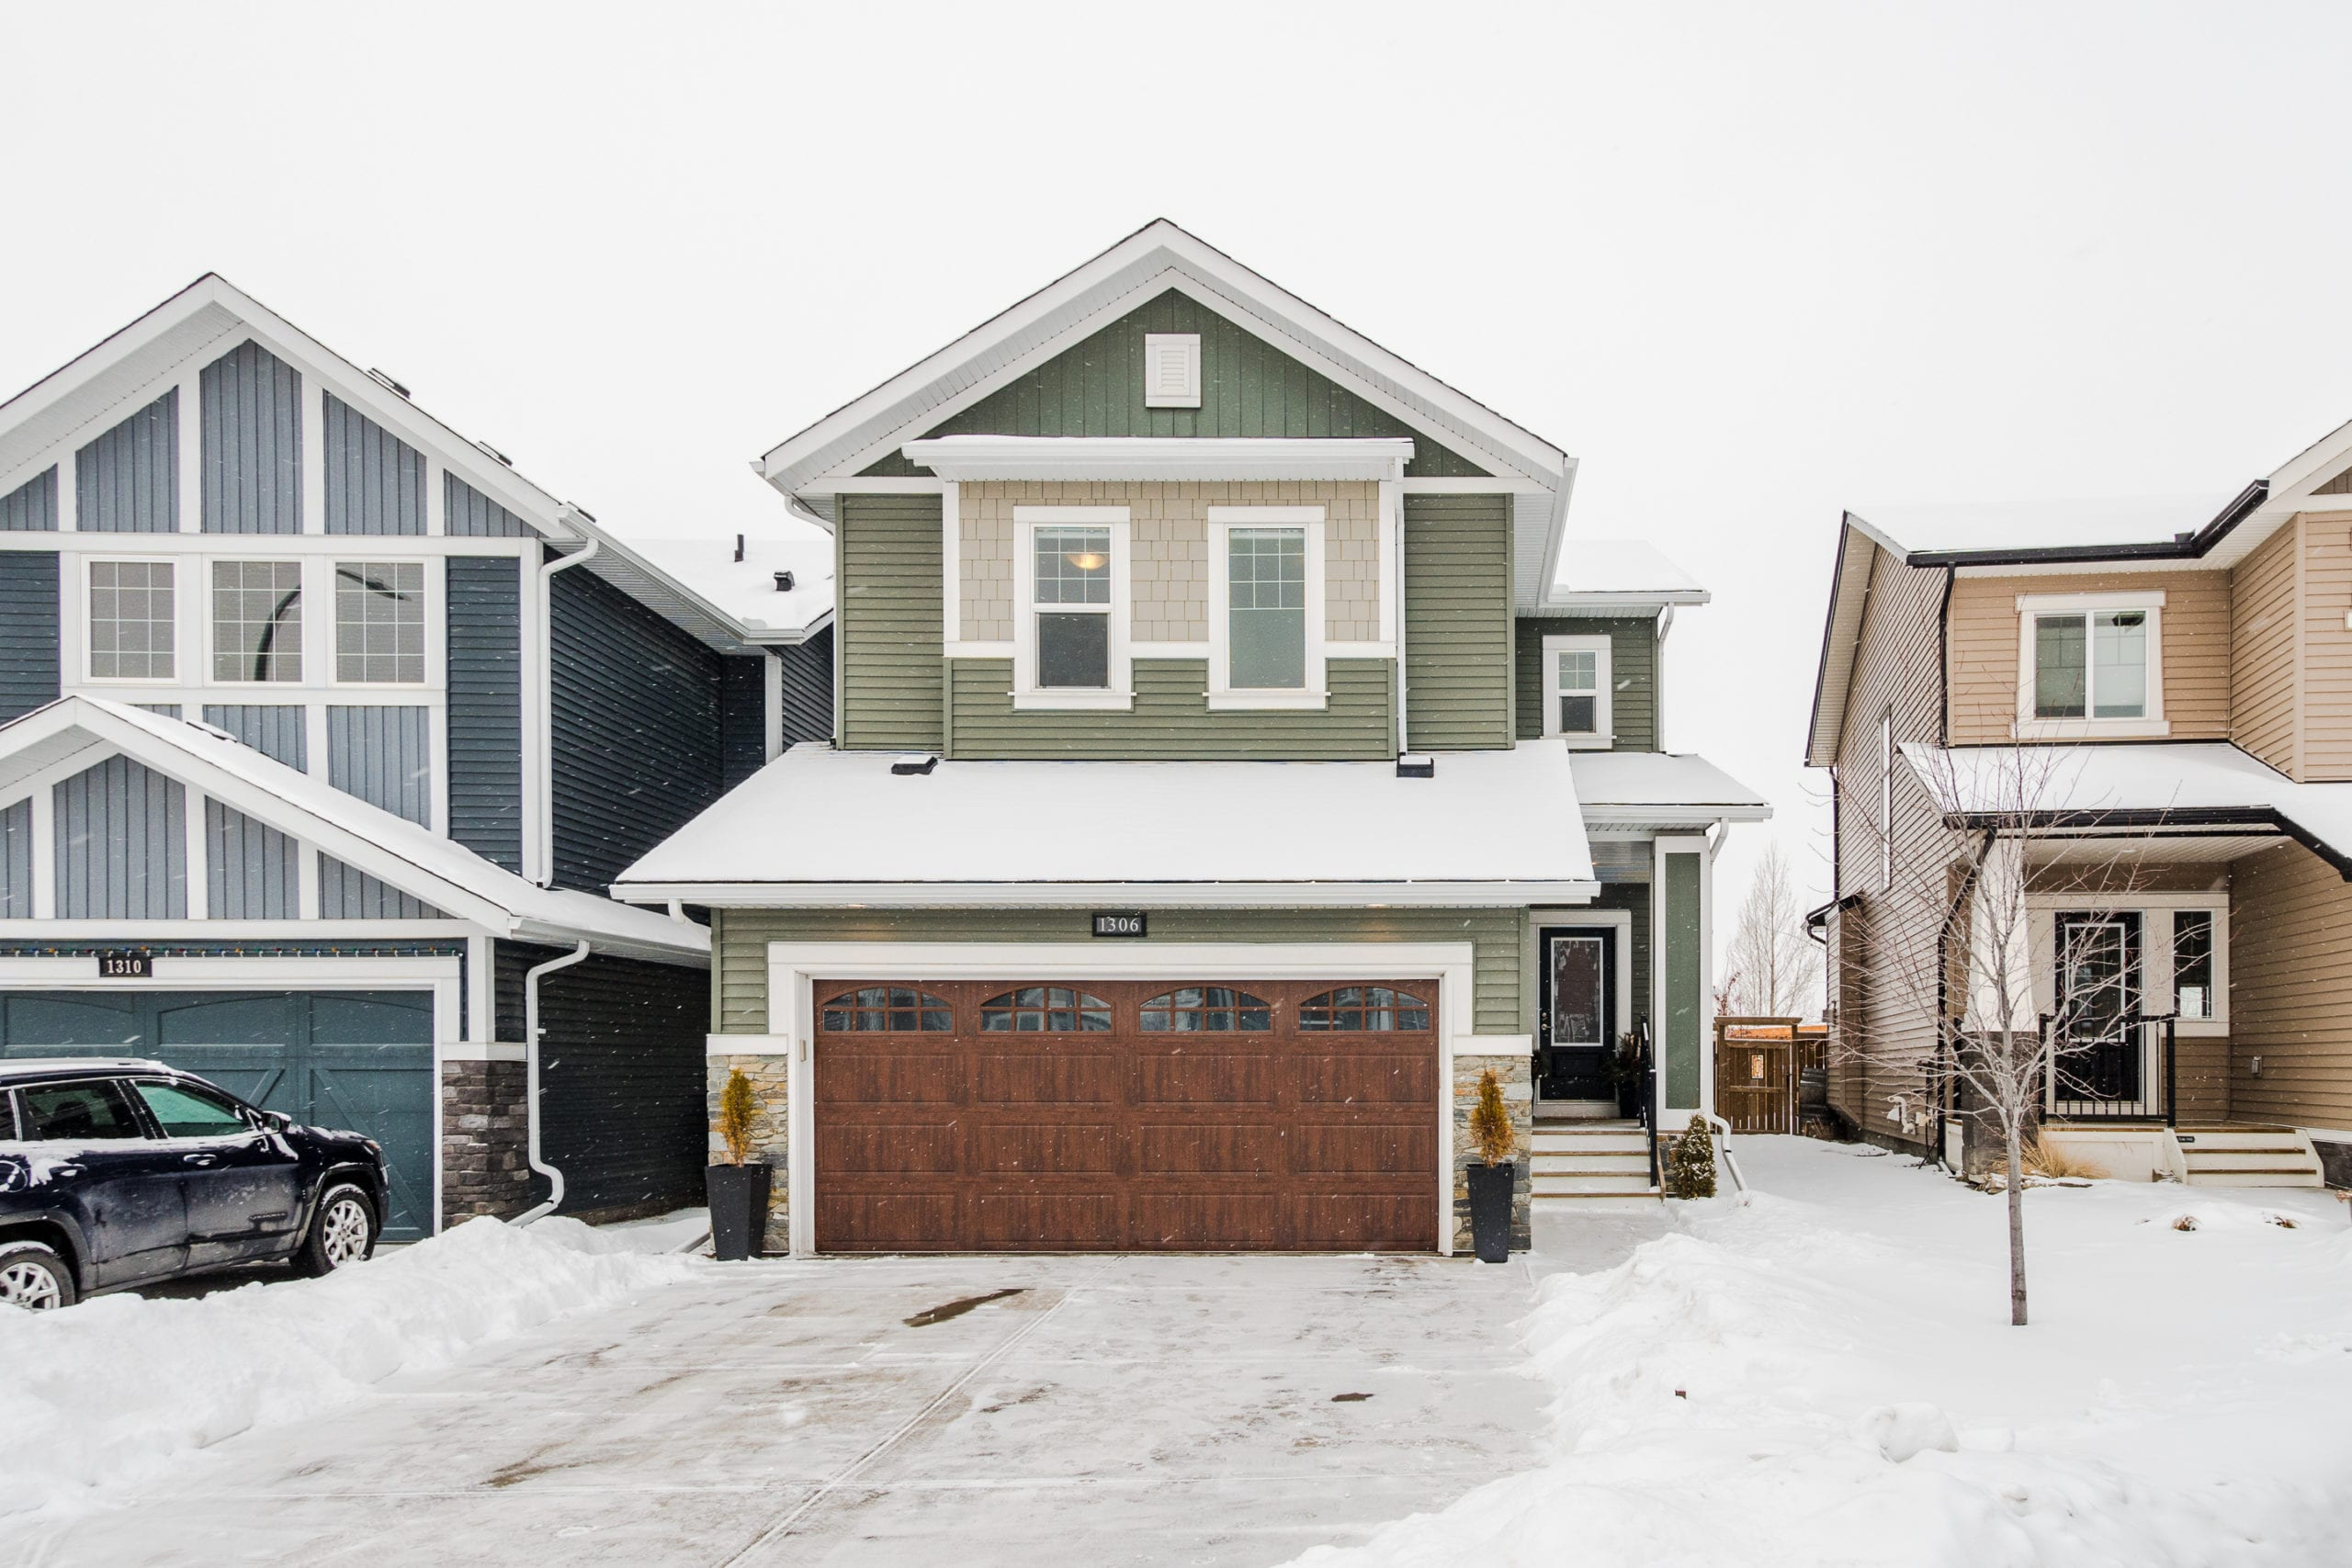 Hello Gorgeous - 1306 Kings Heights Way SE, Airdrie AB. - Tara Molina Real Estate (1 of 53)